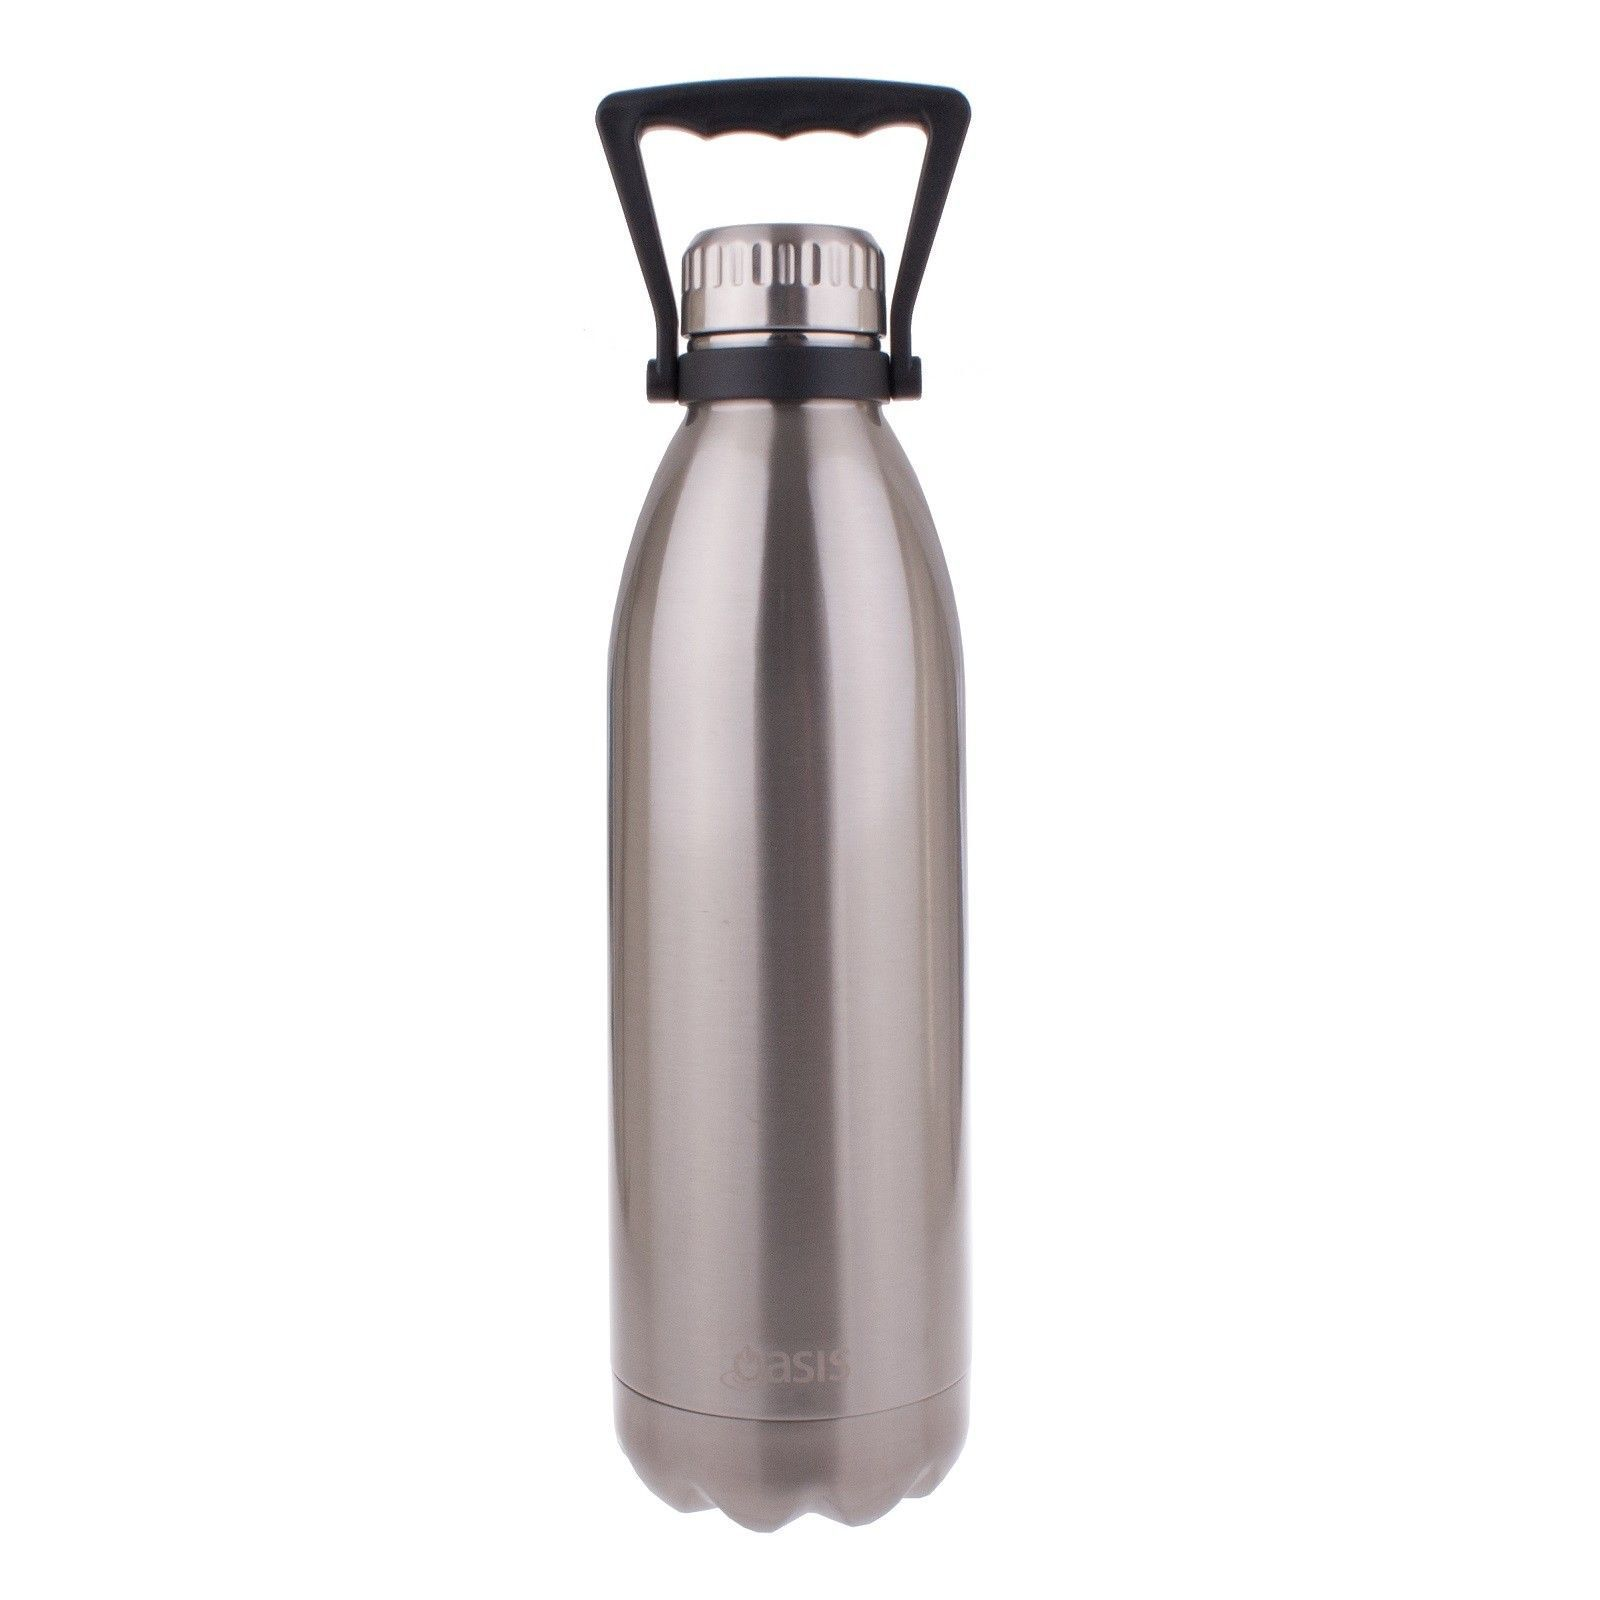 Oasis Double Walled Vacuum Insulated Stainless Steel Water Drink Bottle Black